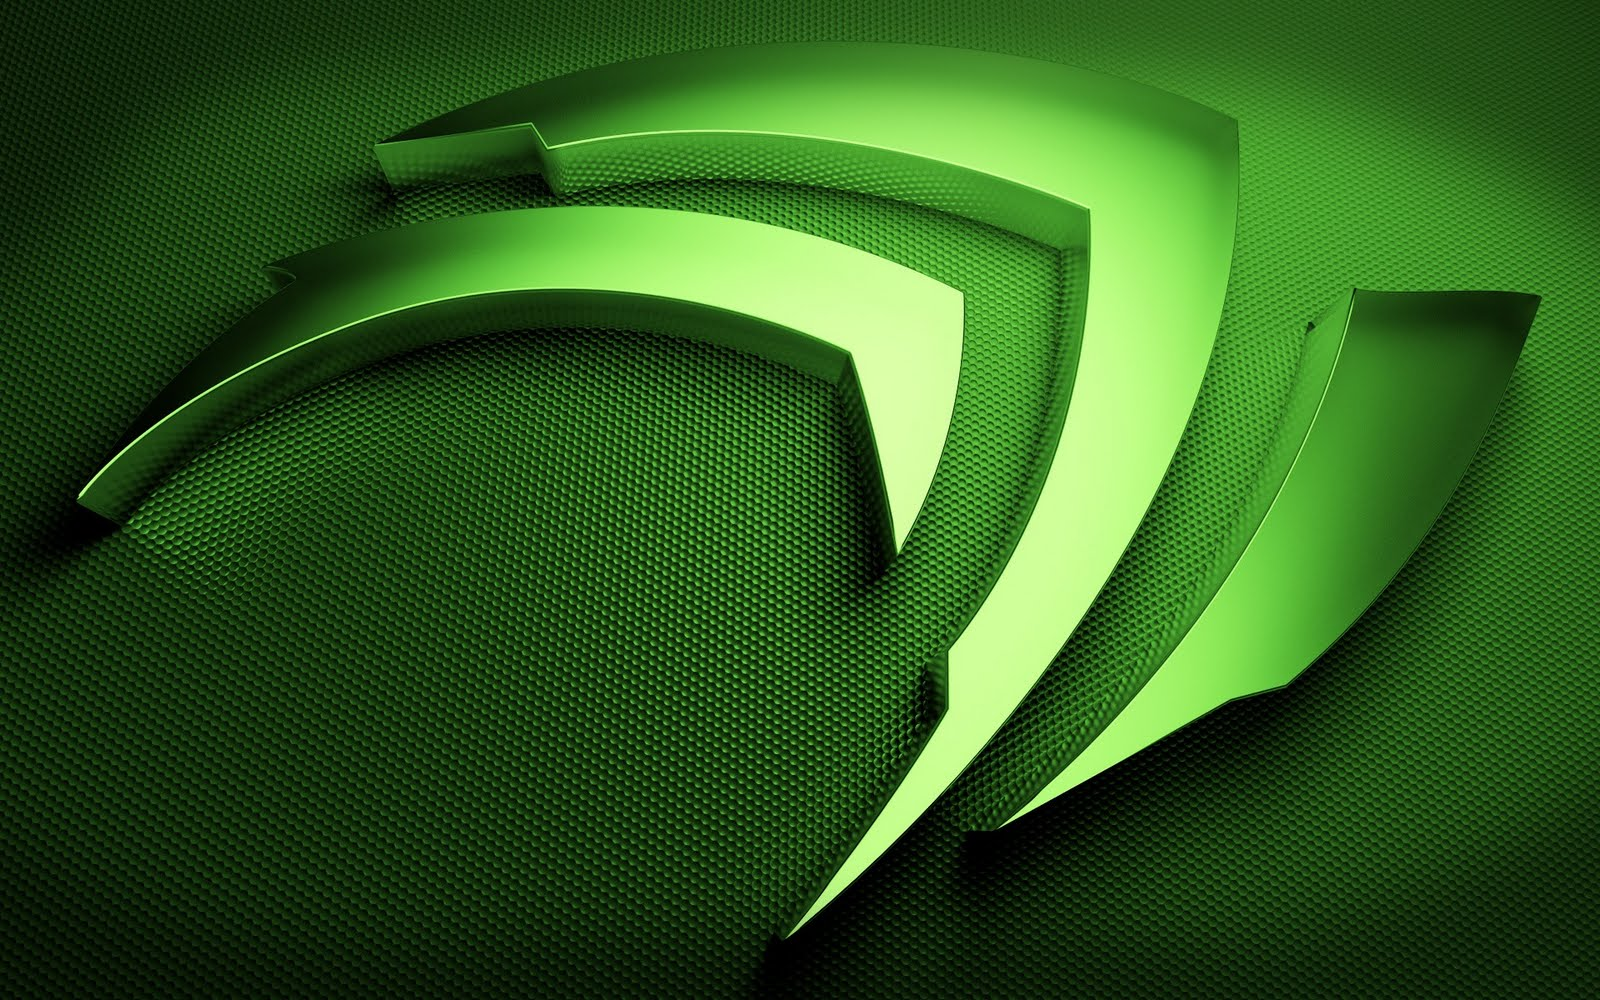 Wallpapers Box nVidia Logo 1920x1200 HD Wallpapers 1600x1000